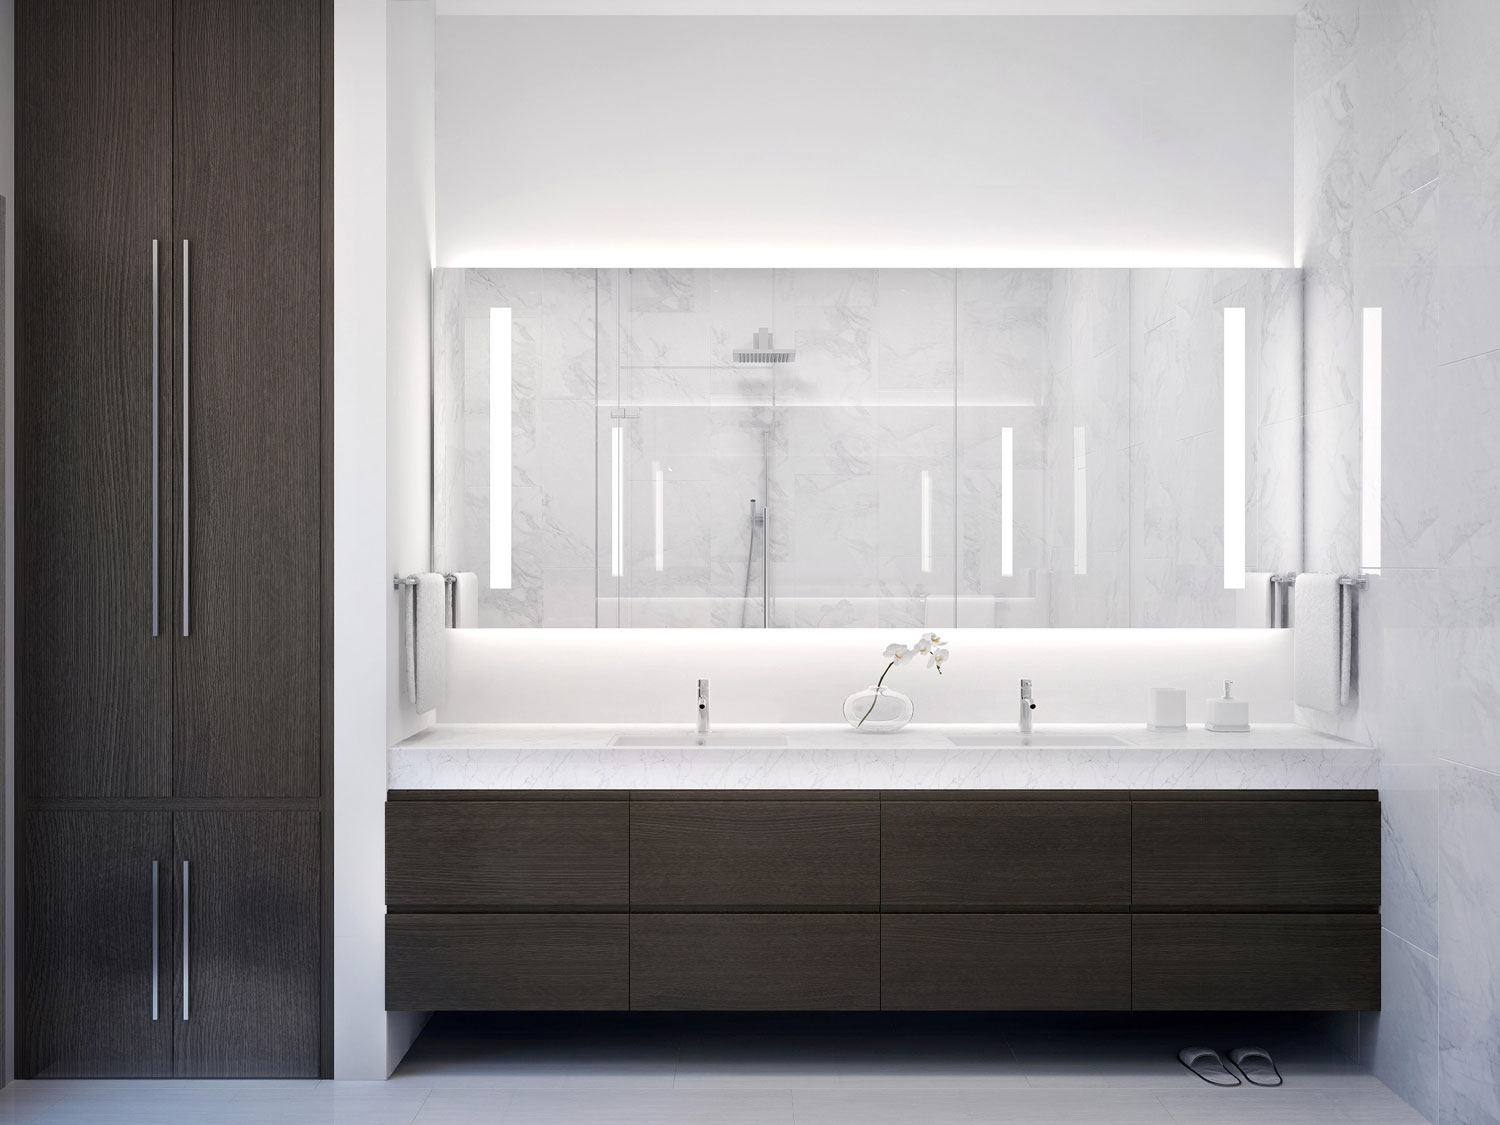 Riva Ft.Lauderdale Bathroom Vanities with Closet Door